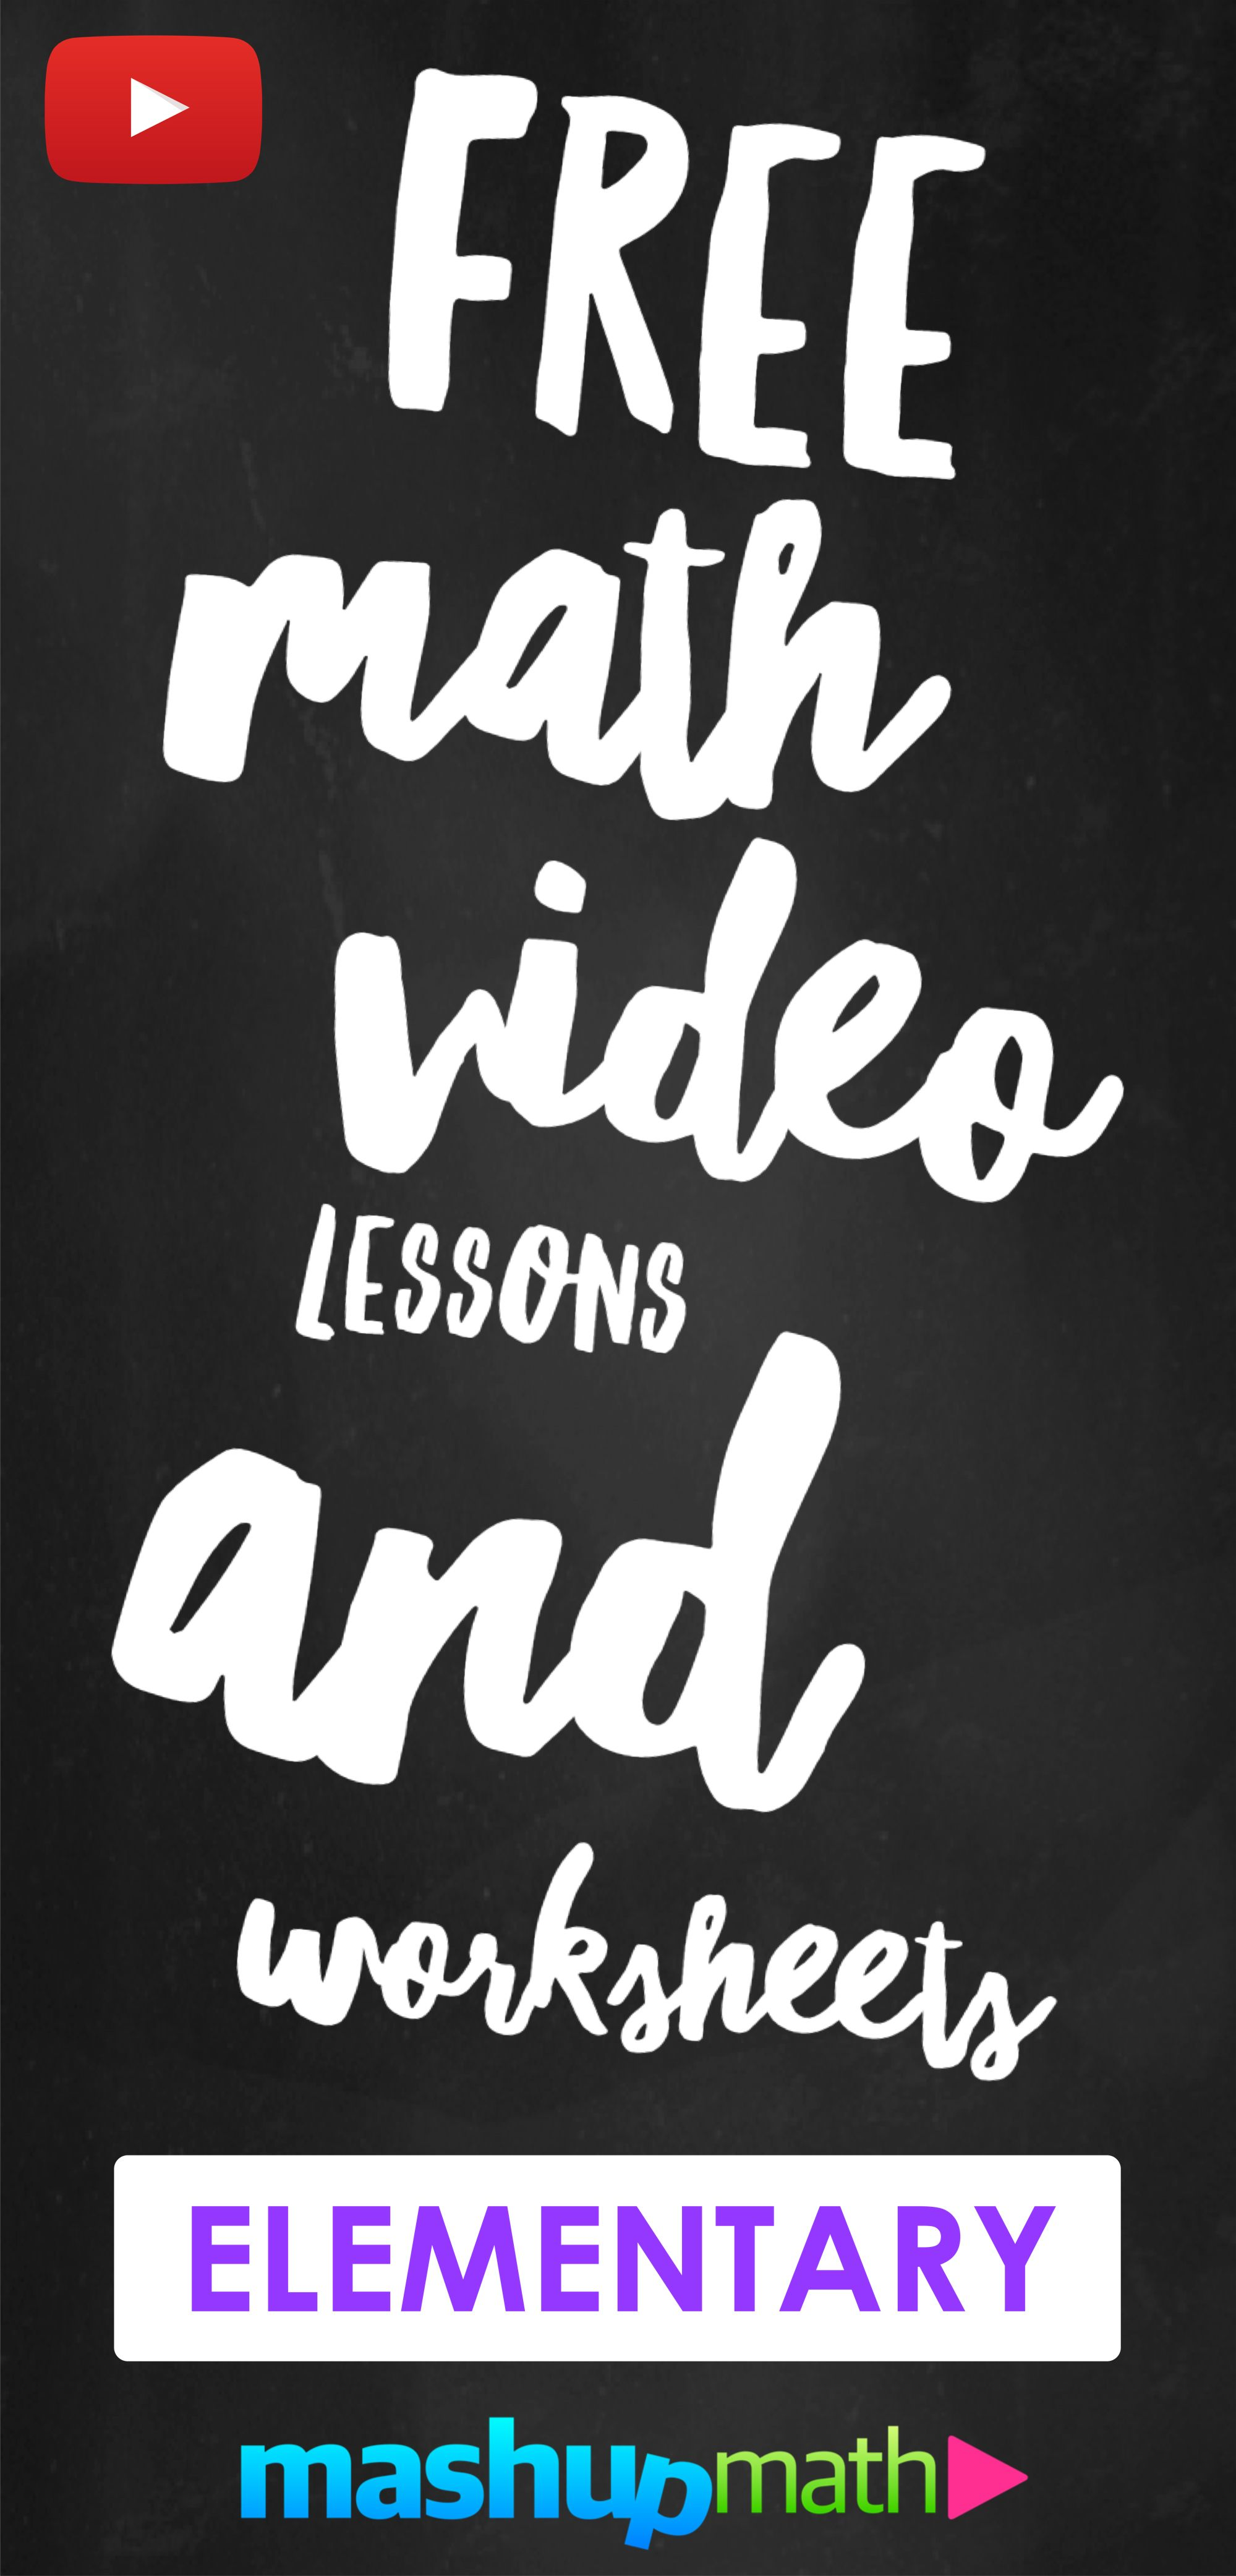 Learn Math With Our Library Of 100 Free Video Lessons On